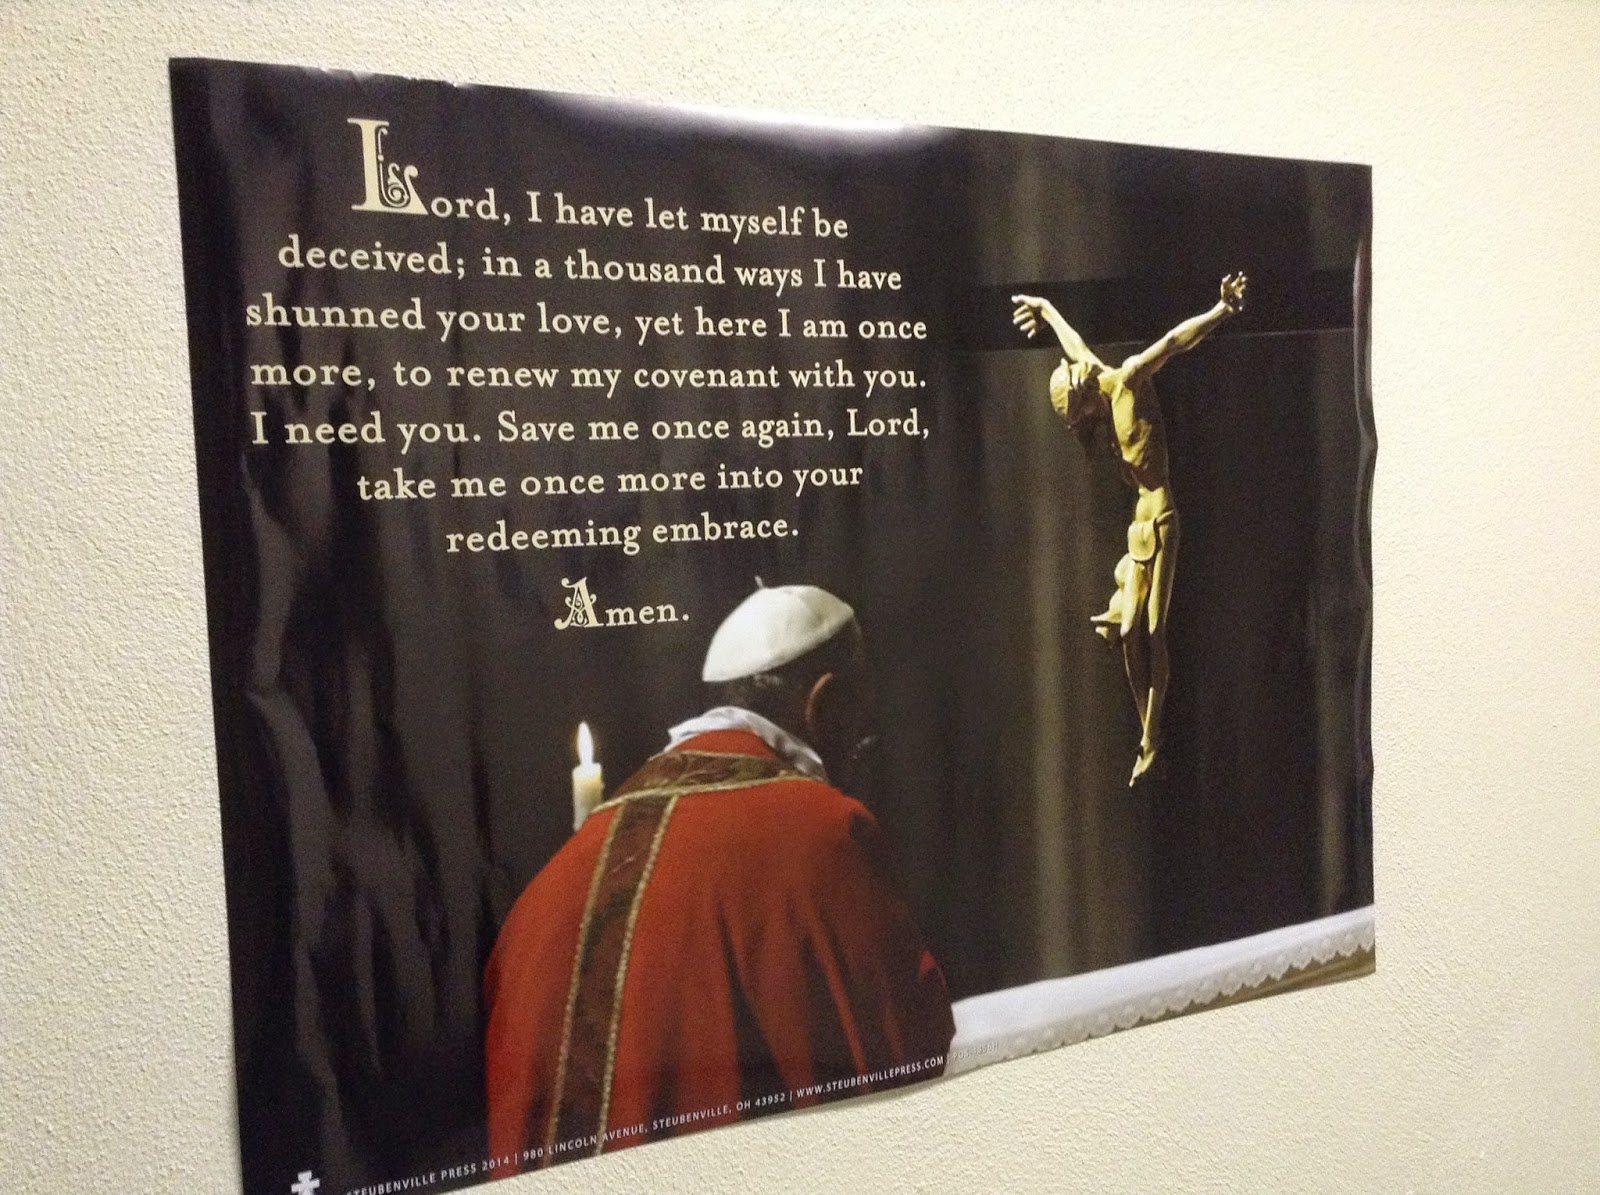 http://www.steubenvillepress.com/pope-francis-daily-prayer-of-turning-to-christ-poster/